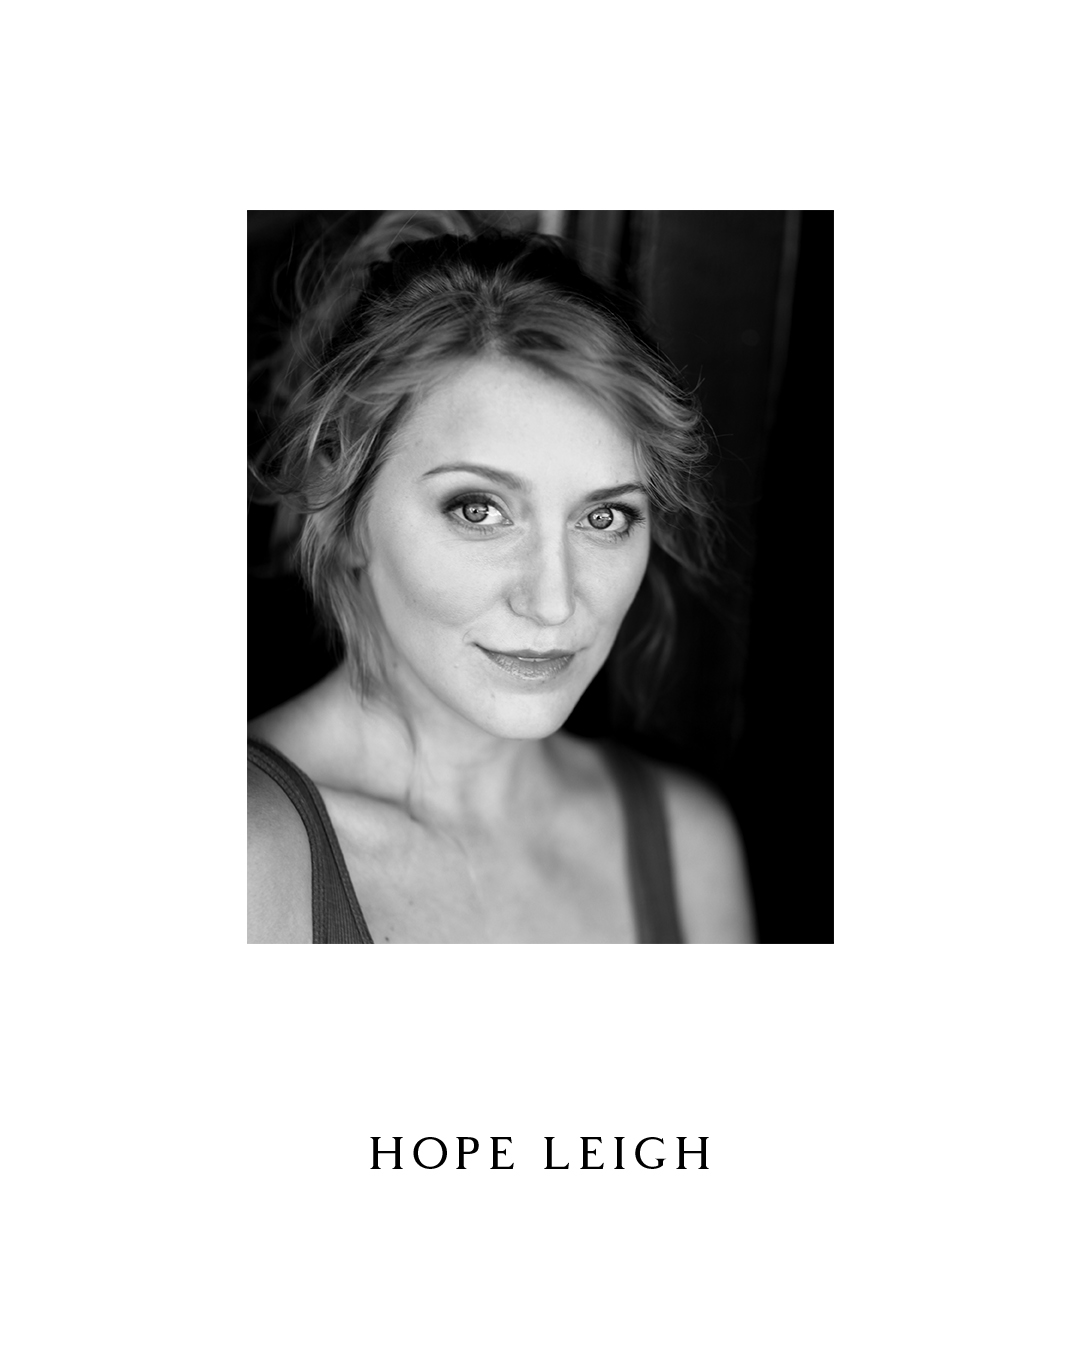 Hope Leigh - Assistant Director